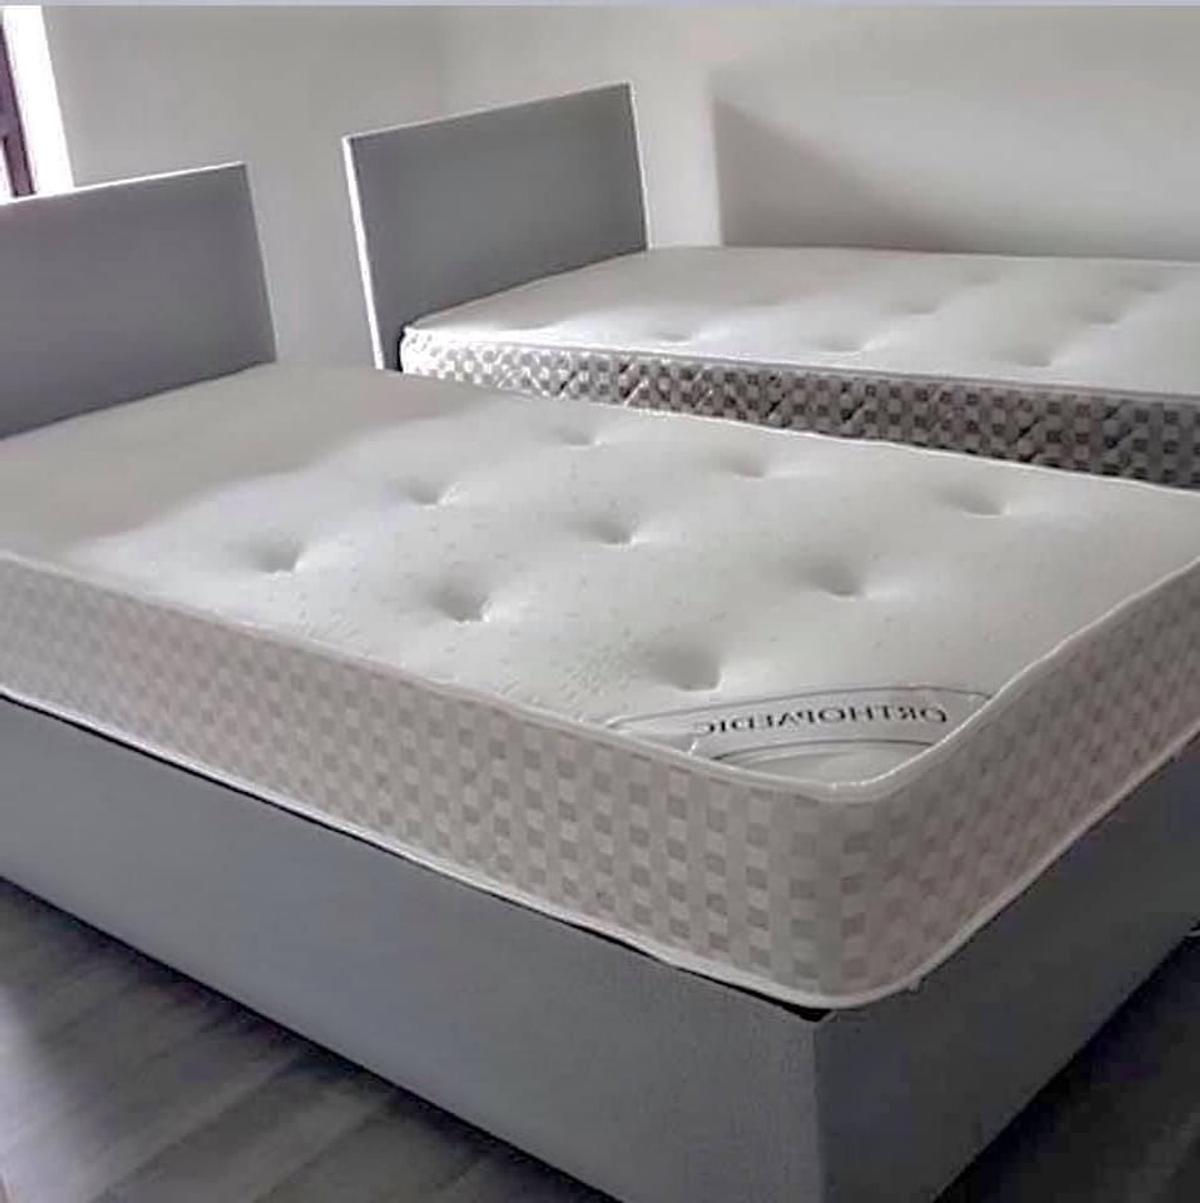 Picture of: Best Quality Single Divan Beds For Quick Sale In M21 Manchester For 39 00 For Sale Shpock